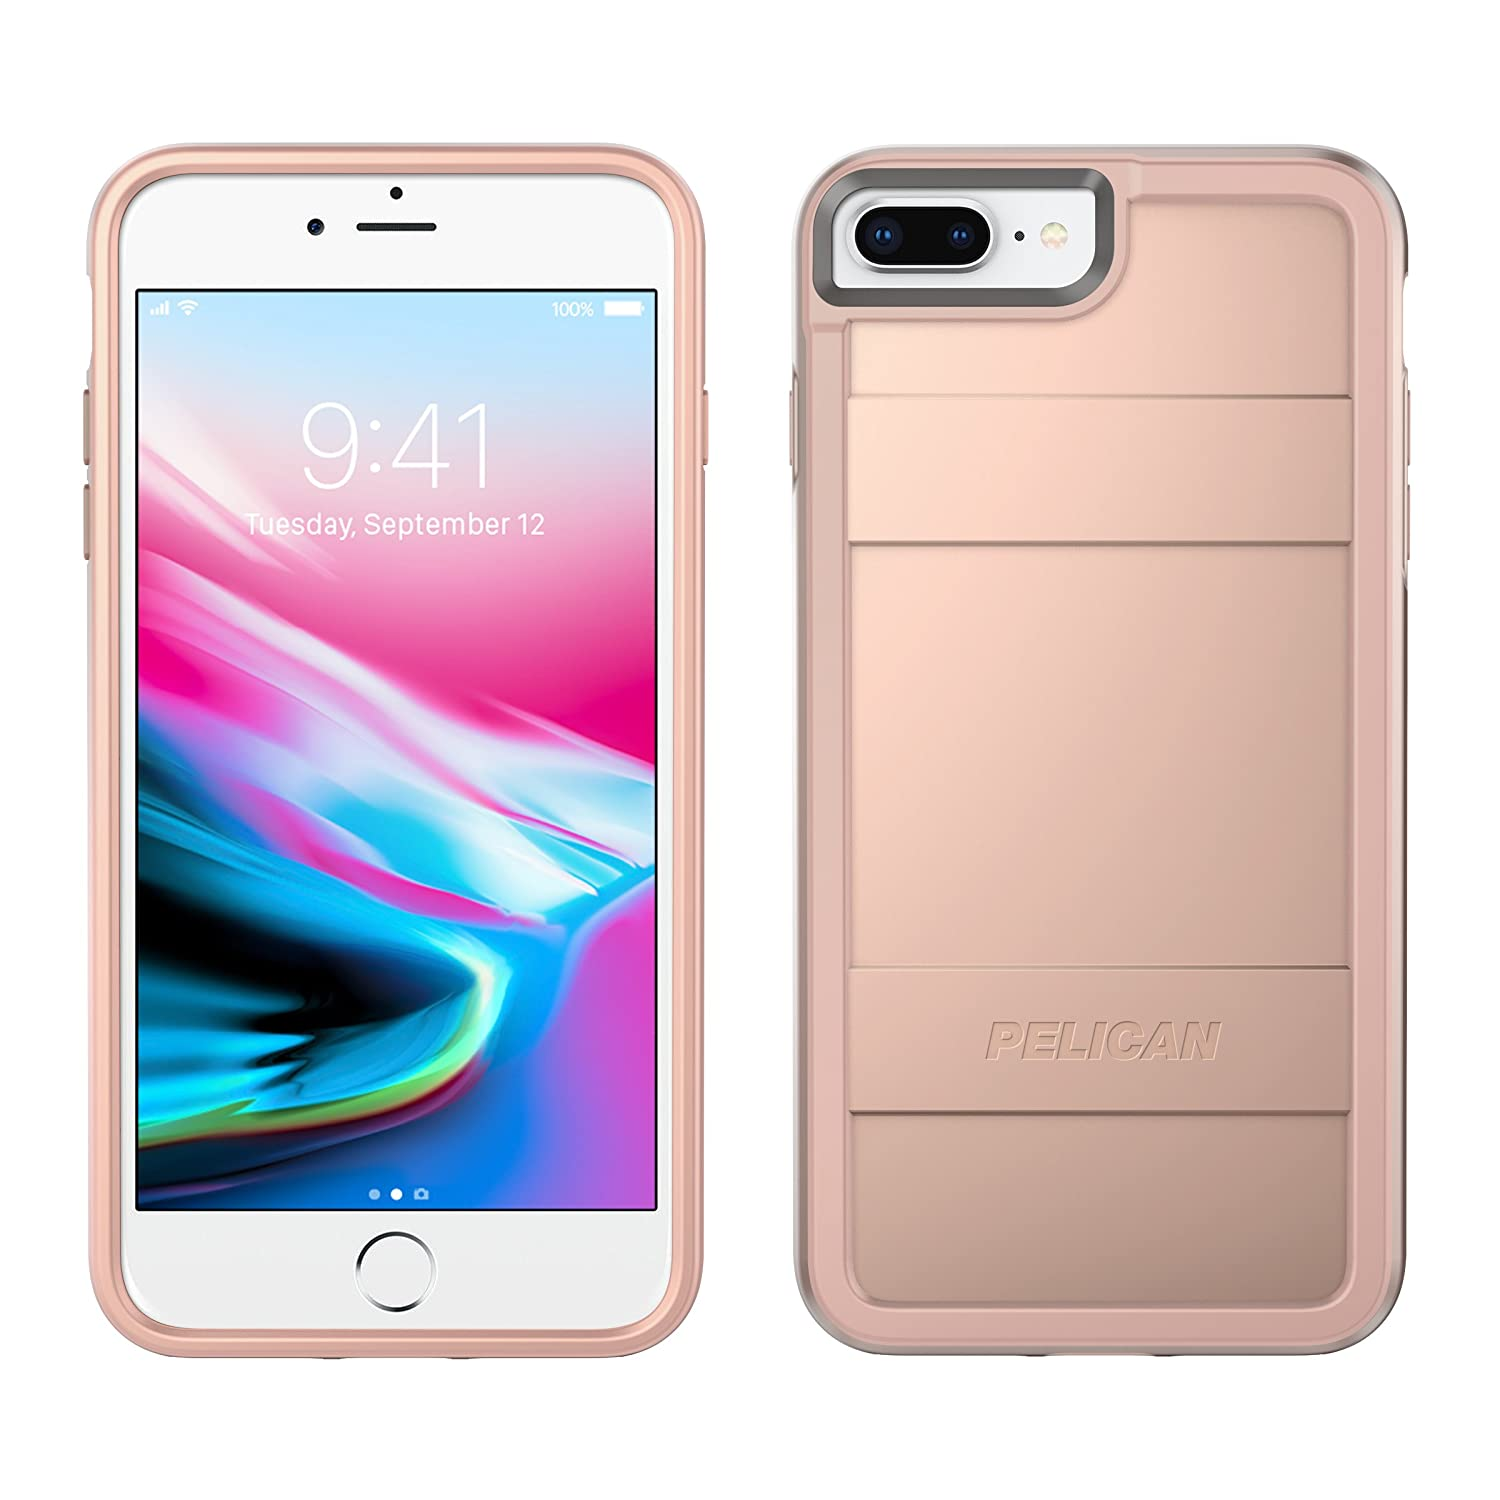 Pelican iPhone 8 Plus Case | Protector Case - fits iPhone 6/6s/7/8 Plus (Metallic Rose Gold)